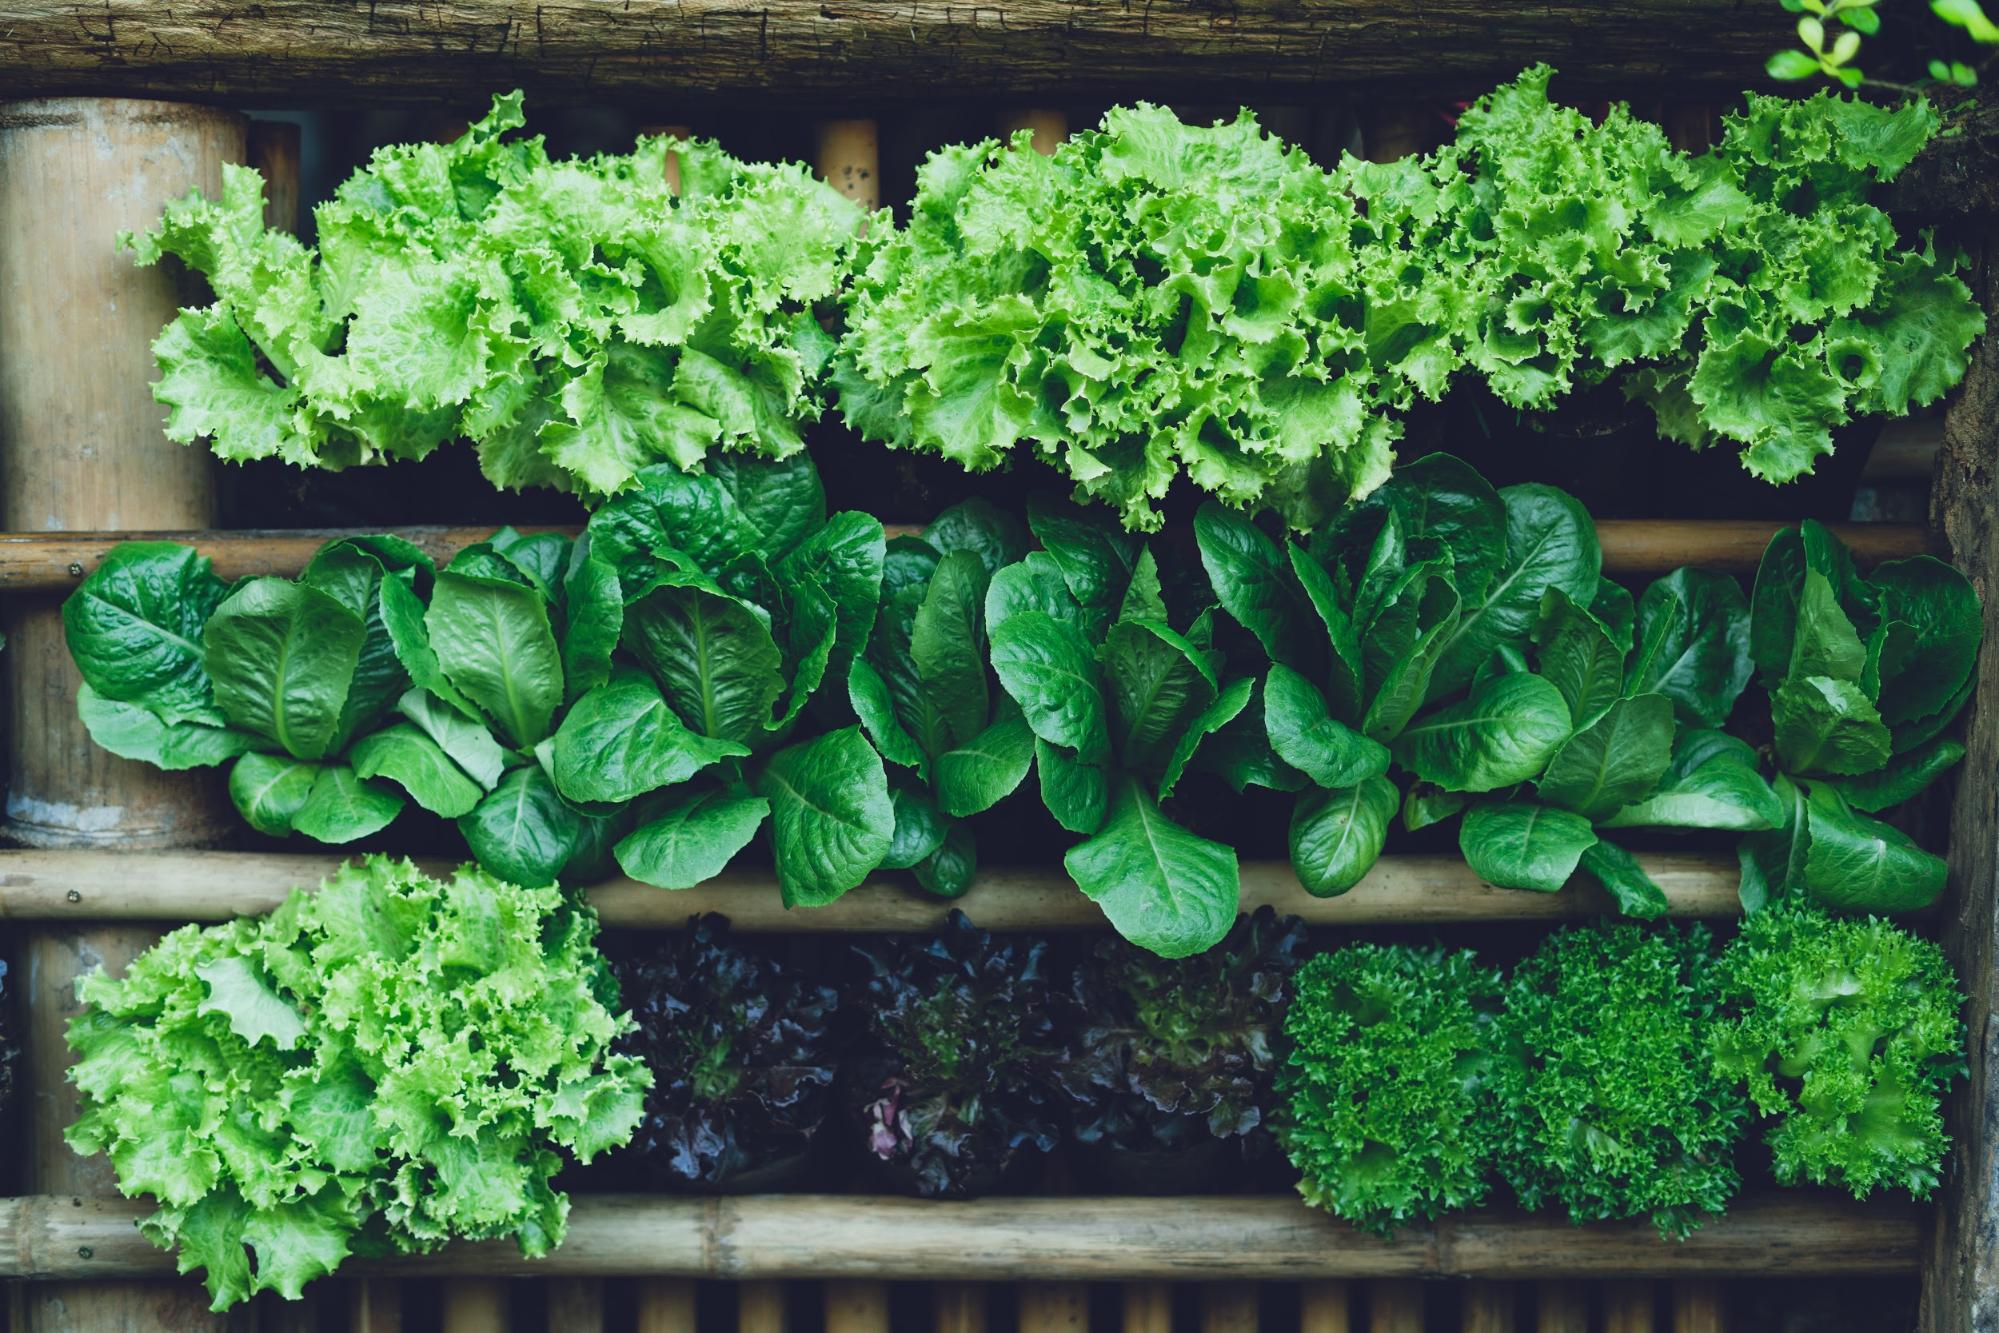 vegetables that grow in shade: Variety of green leafy vegetables